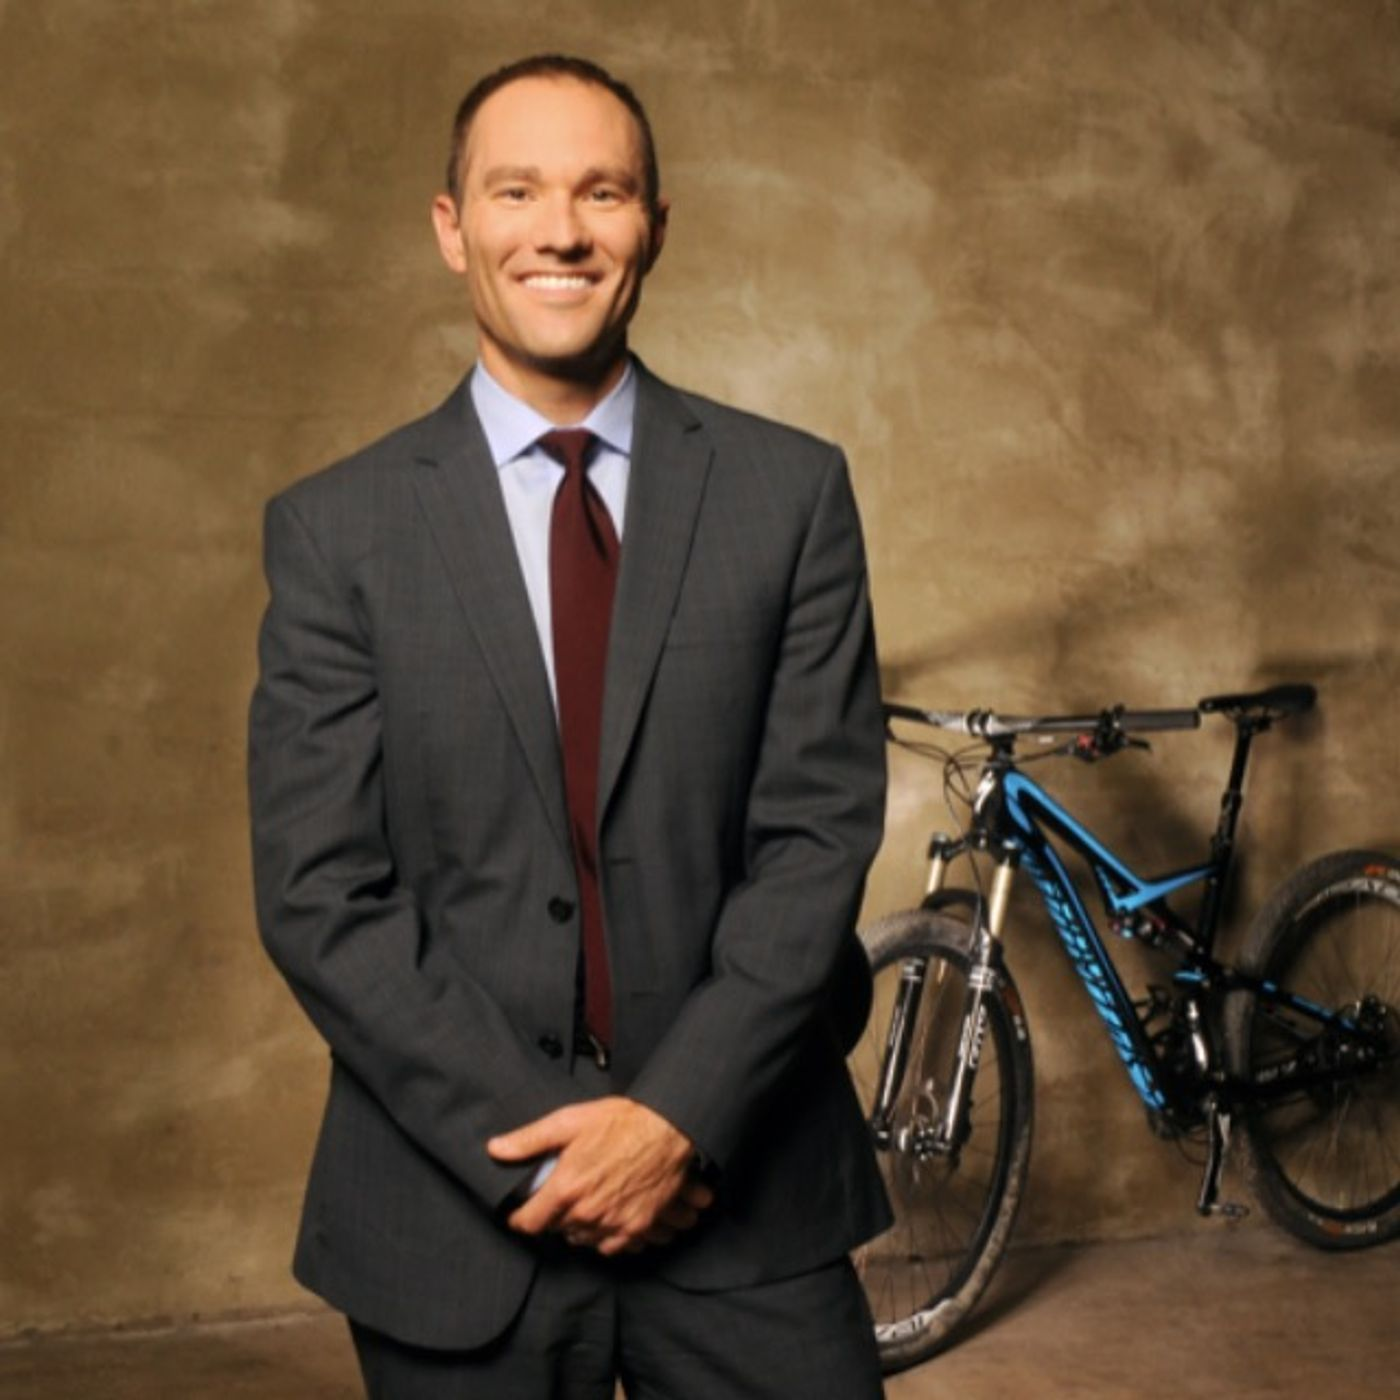 From Staff Physical Therapist to CEO of a Gastroenterology Physicians Specialty Company, Jason Richardson